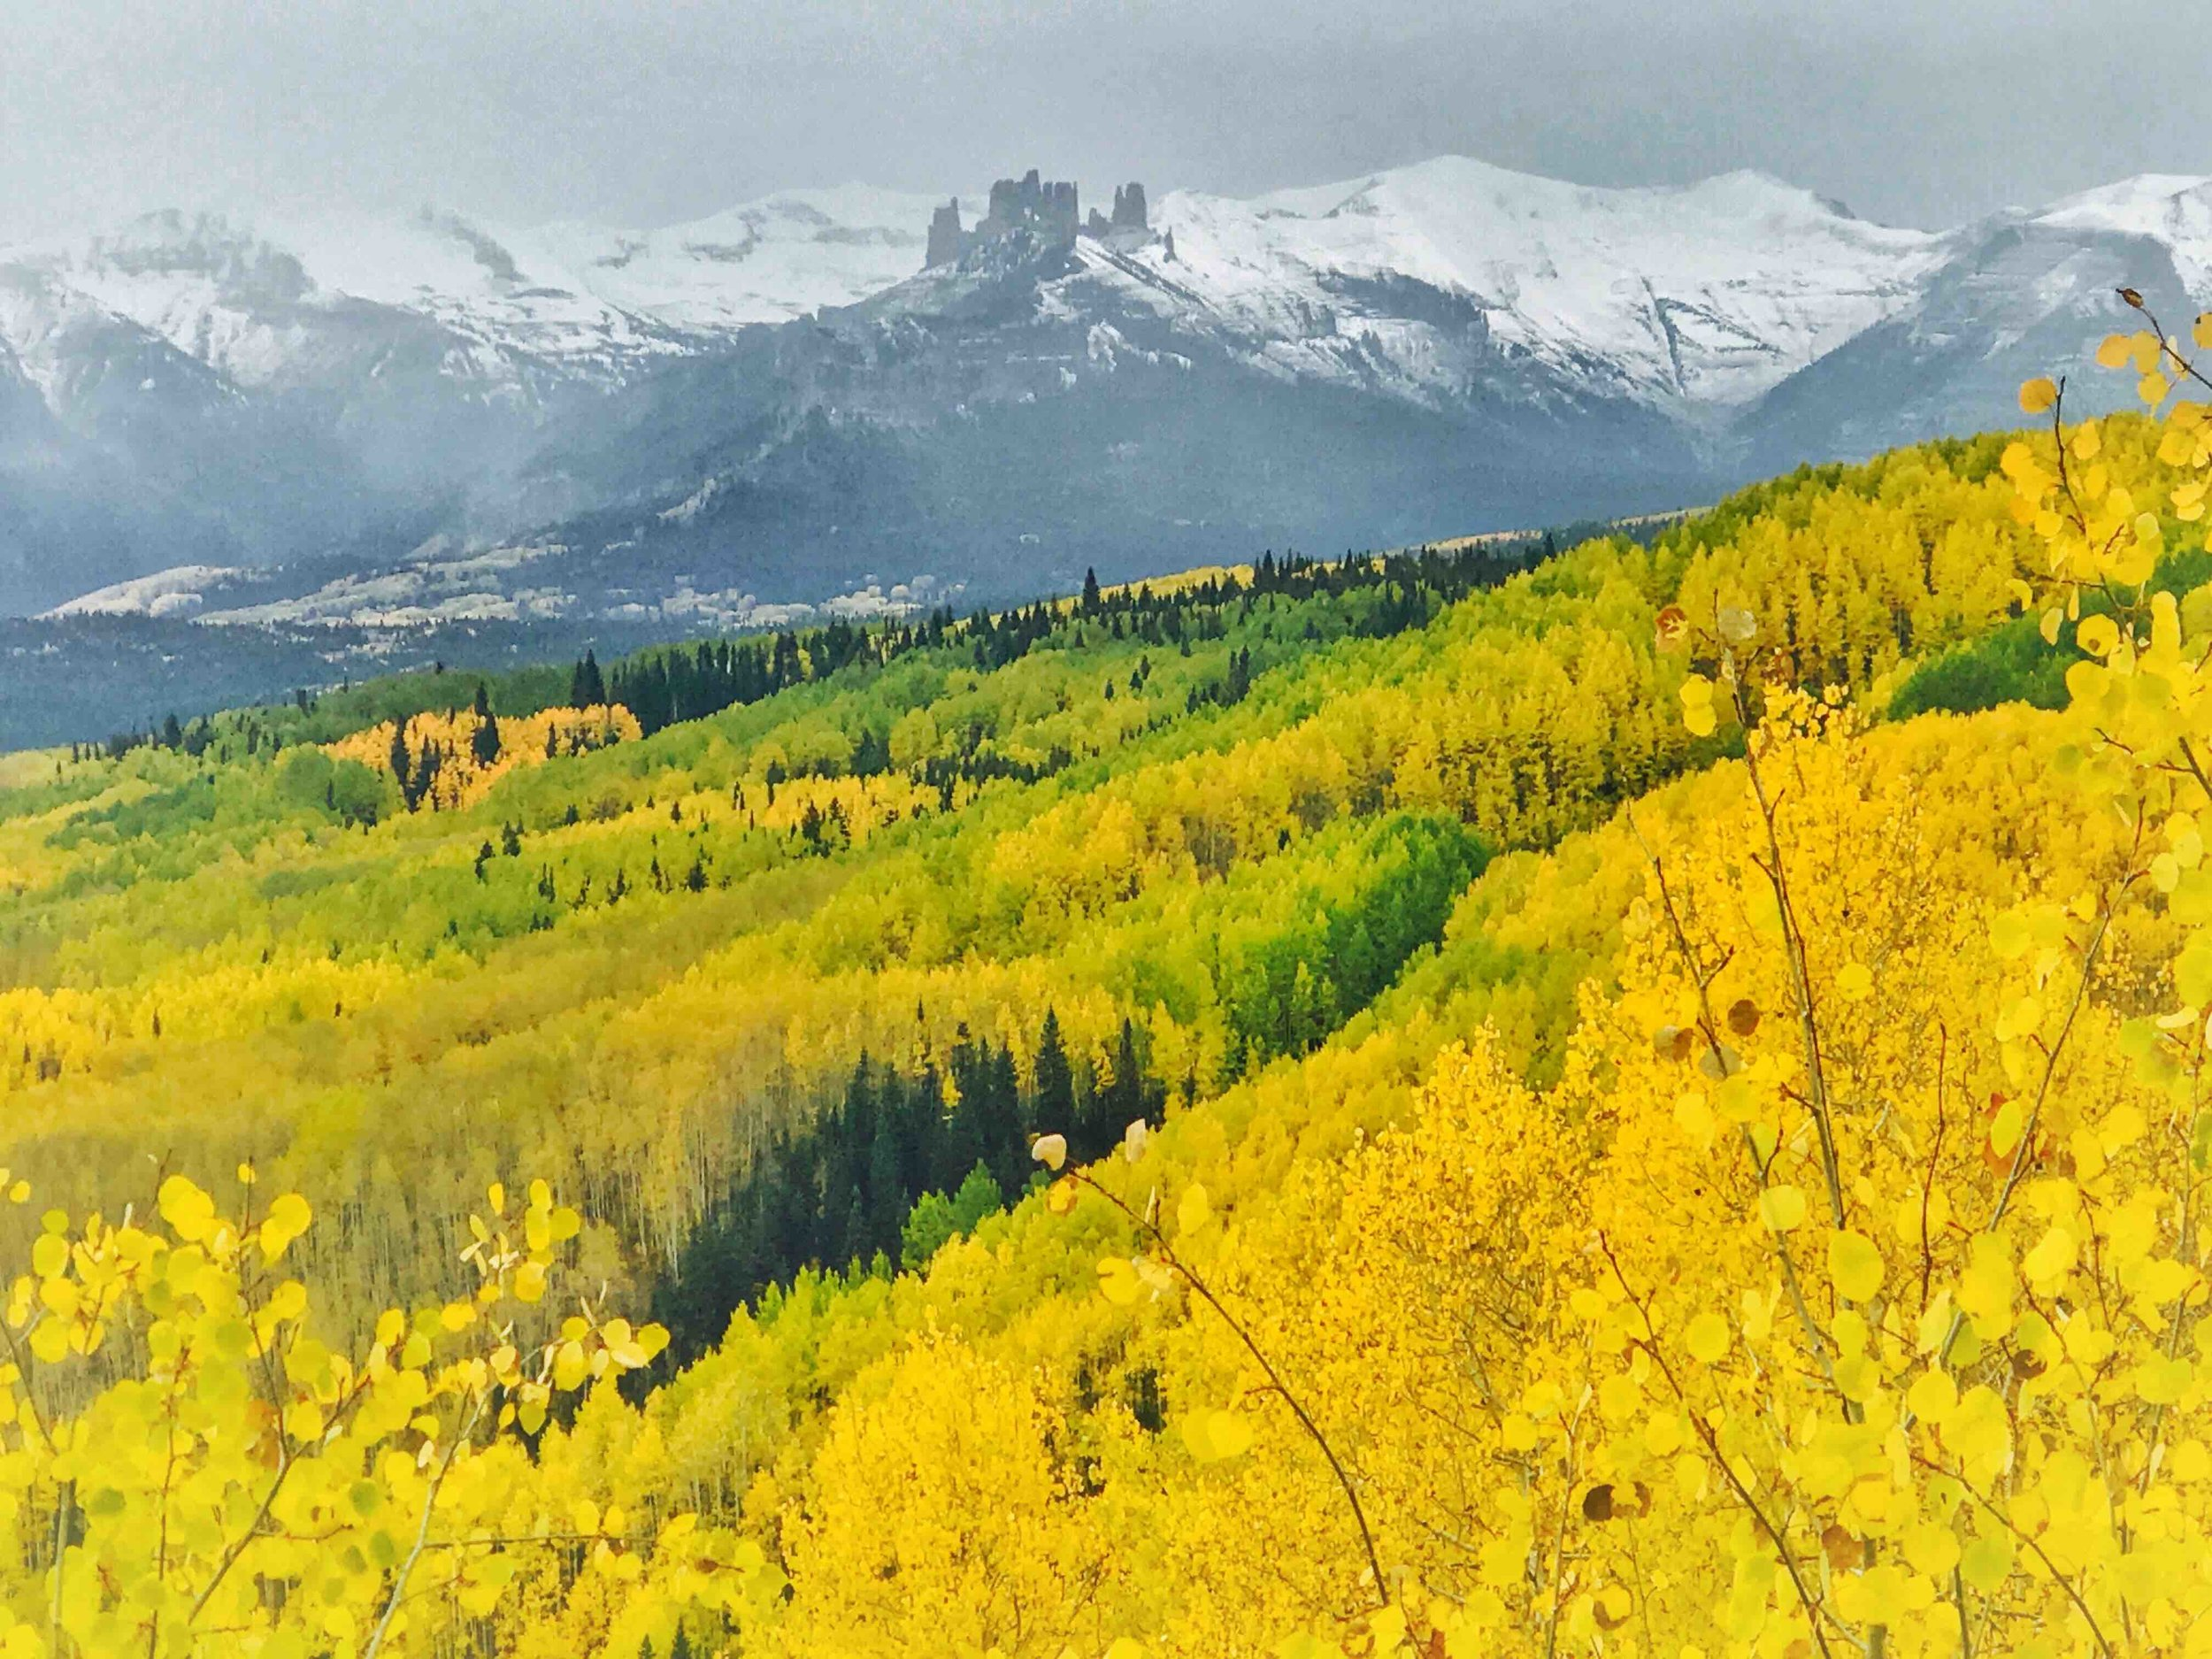 An autumn view of the Castles, near Crested Butte, Colo. and Montanya Distillers.